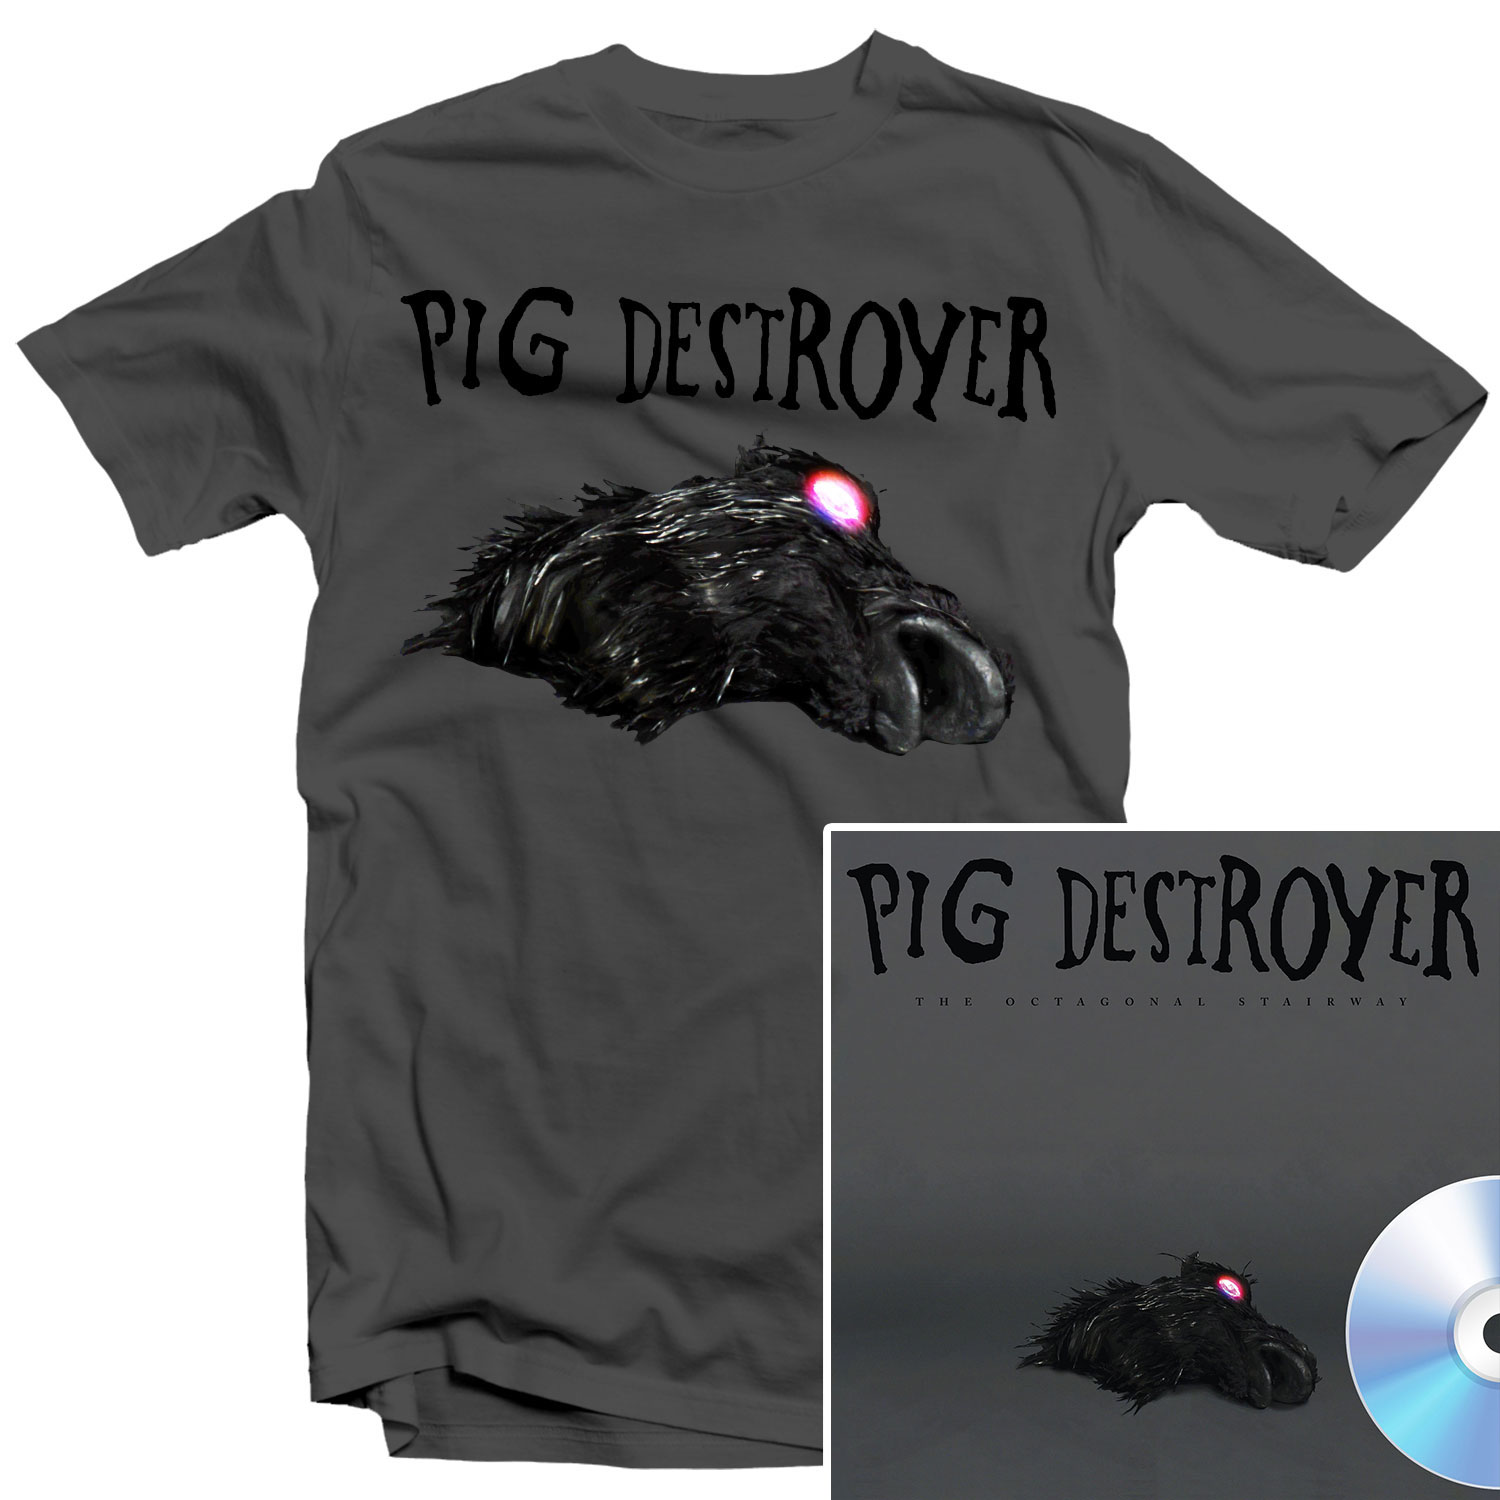 The Octagonal Stairway T Shirt + CD Bundle